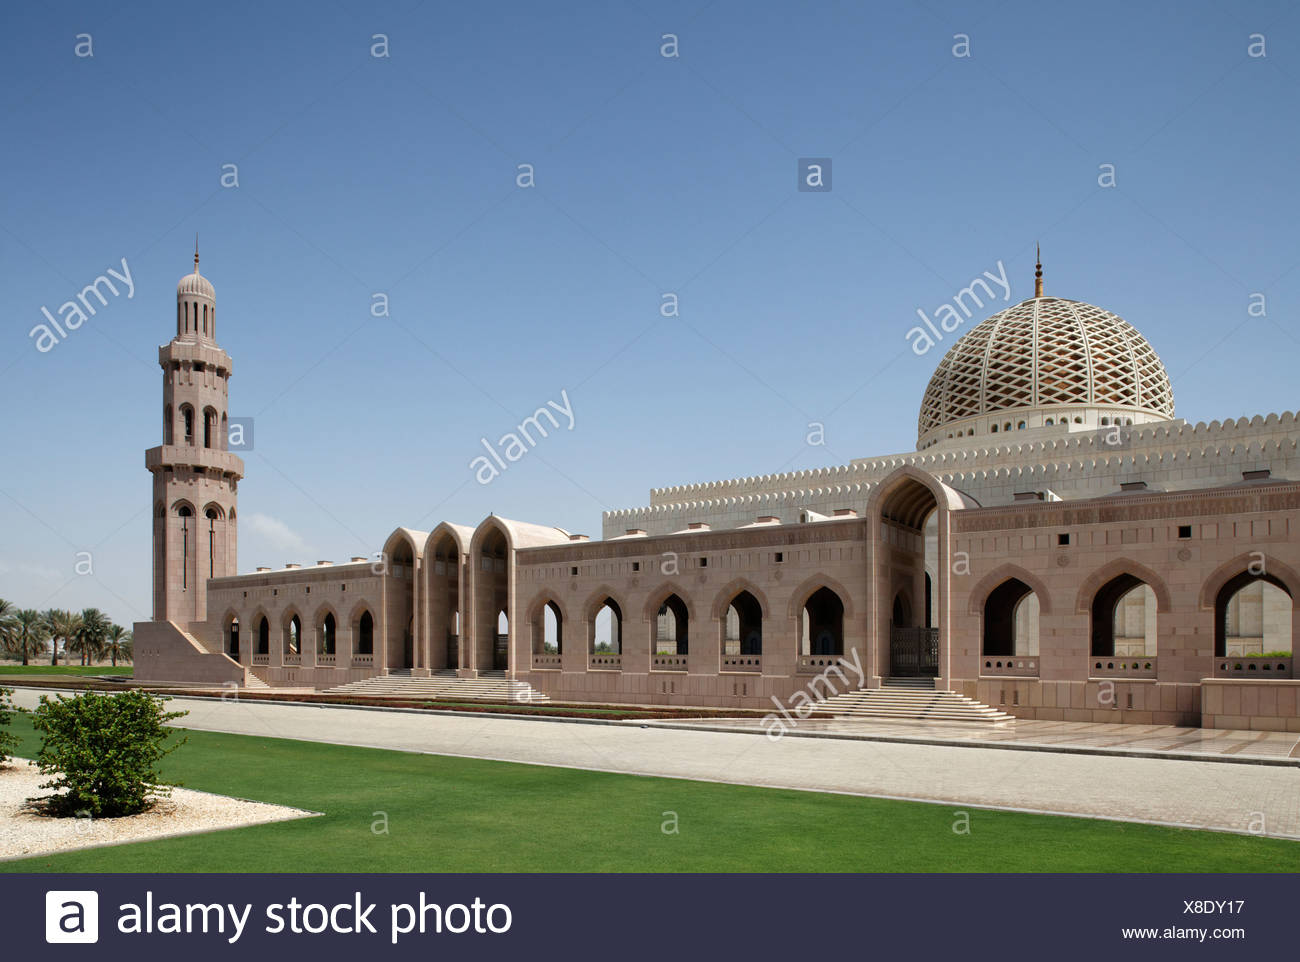 Minaret, dome, lawn, Sultan Qaboos Grand Mosque, Muscat capital, Sultanate of Oman, gulf states, Arabic Peninsula, Middle East - Stock Image